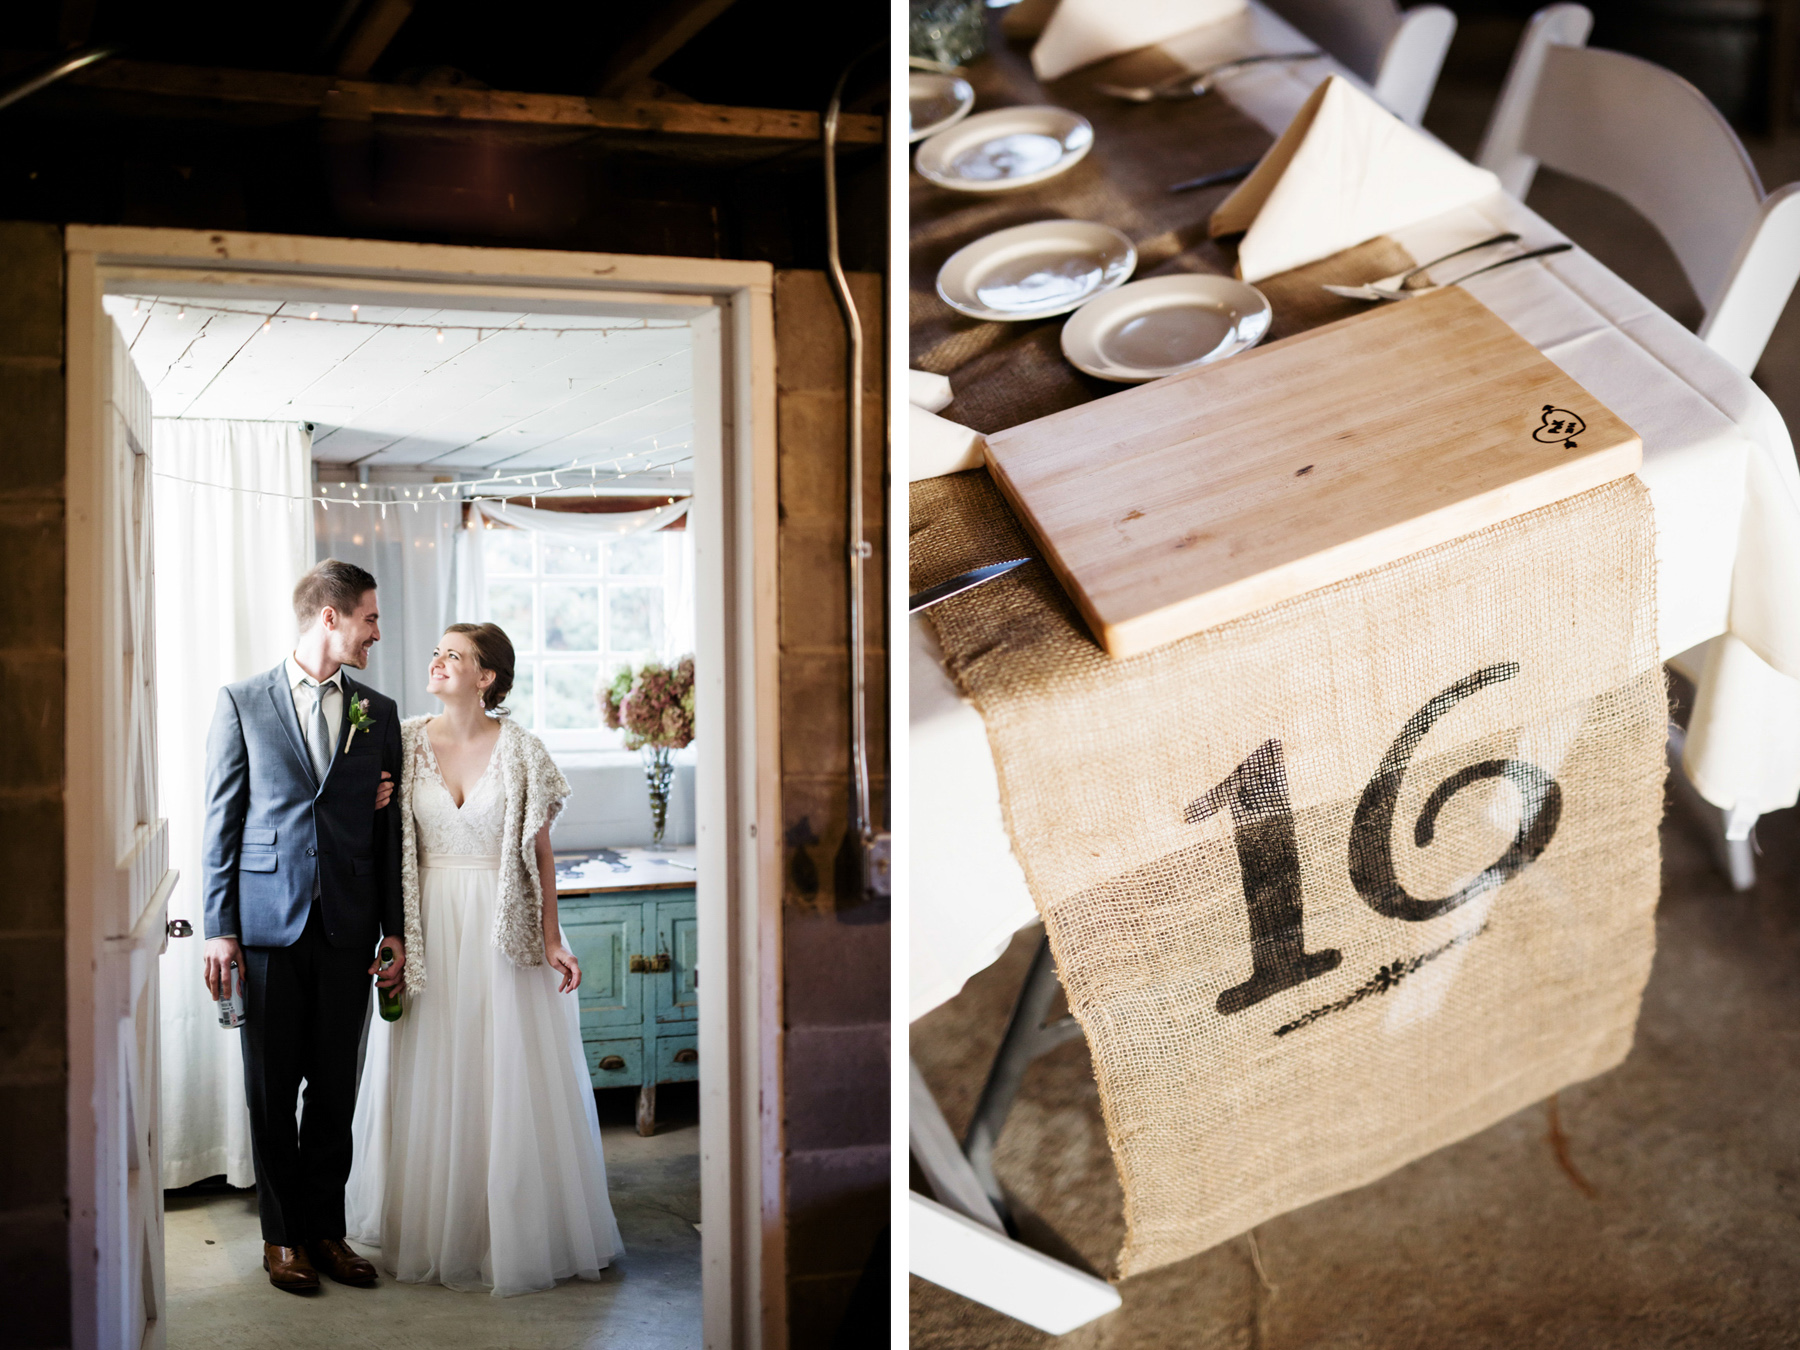 wedding-photographer-rochester-coops-event-barn-clewell-photography-51.1.jpg